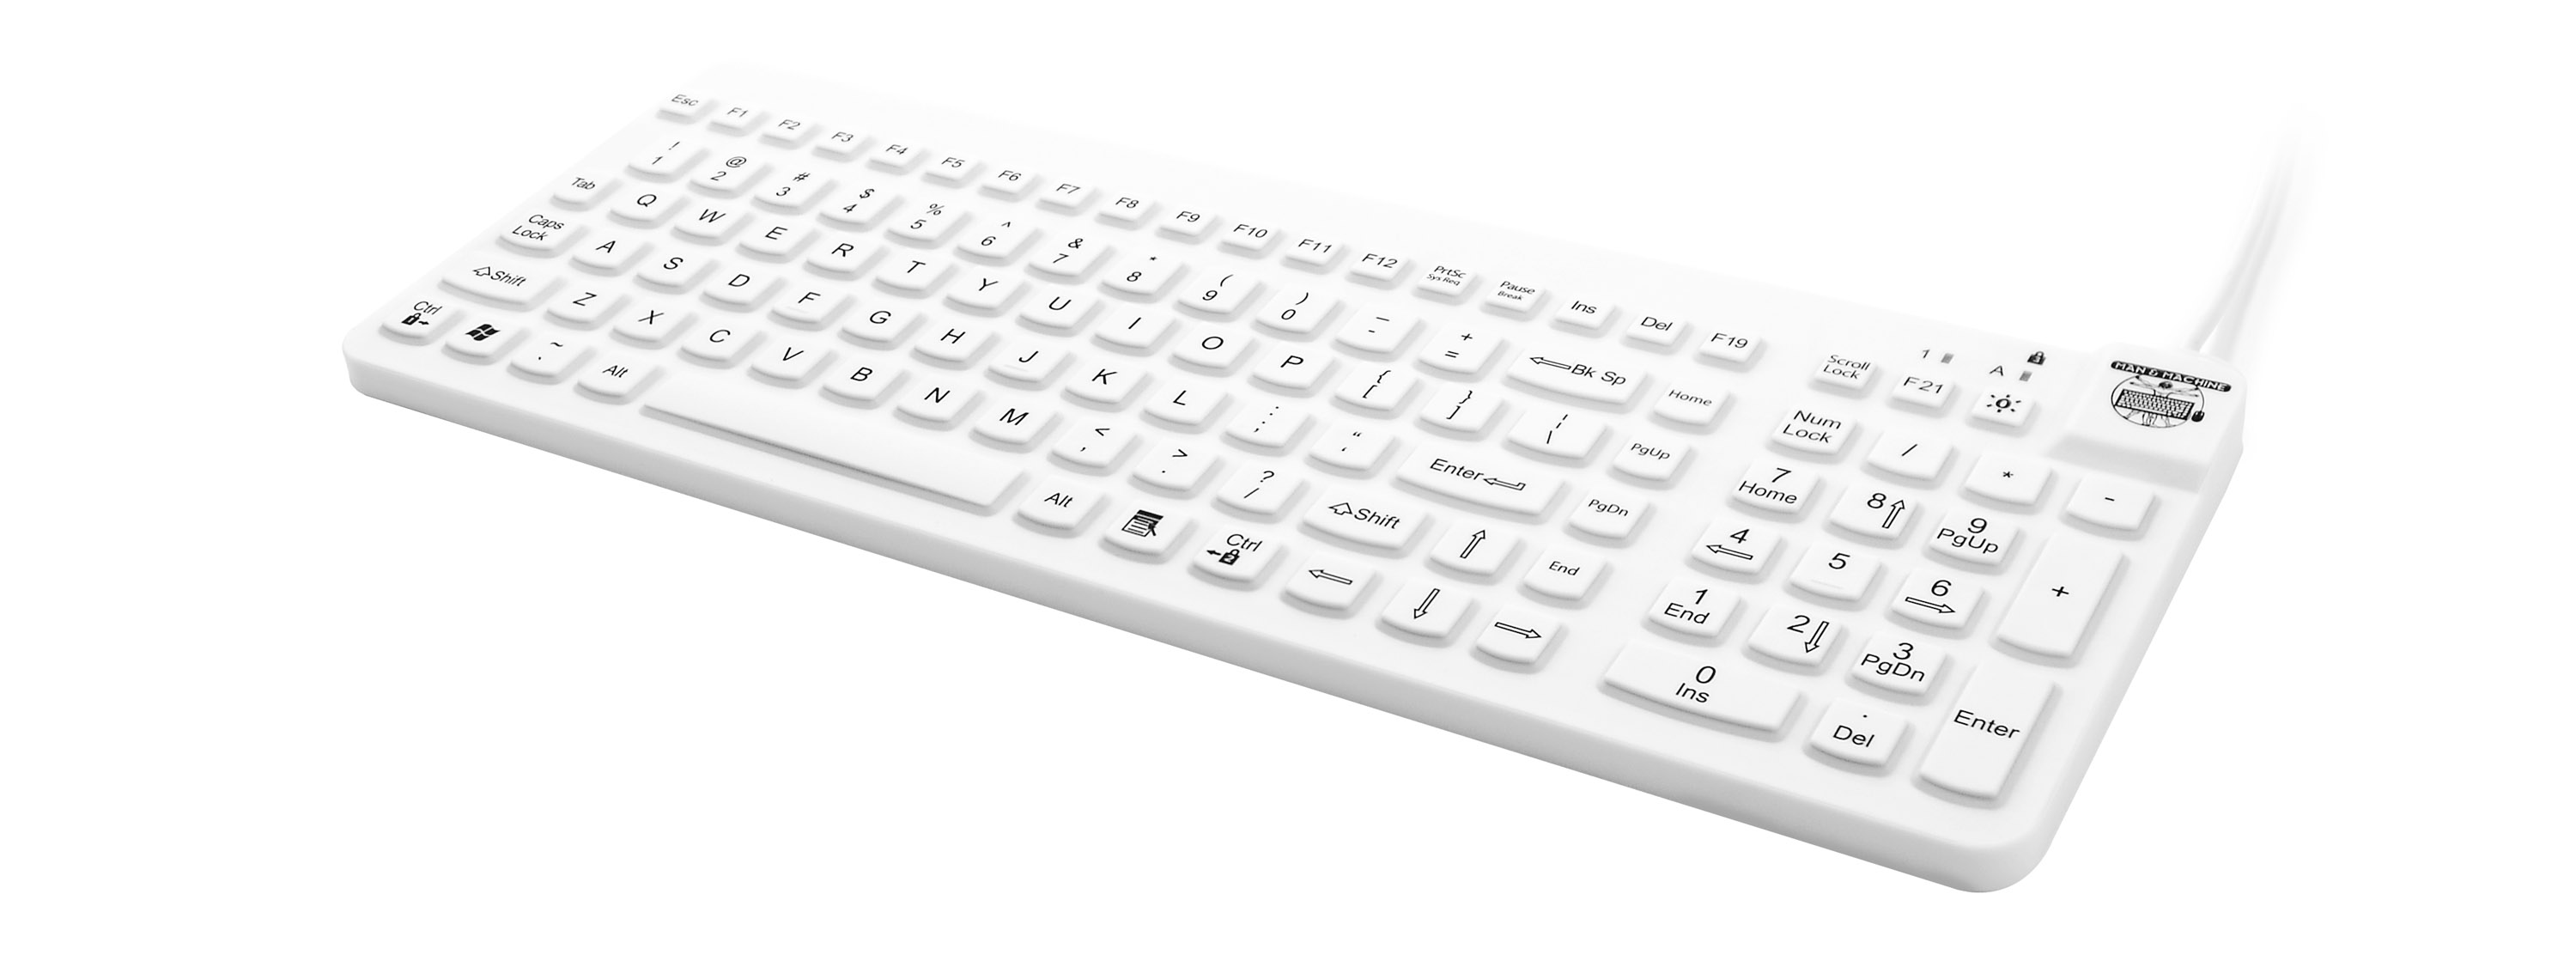 really cool keyboard